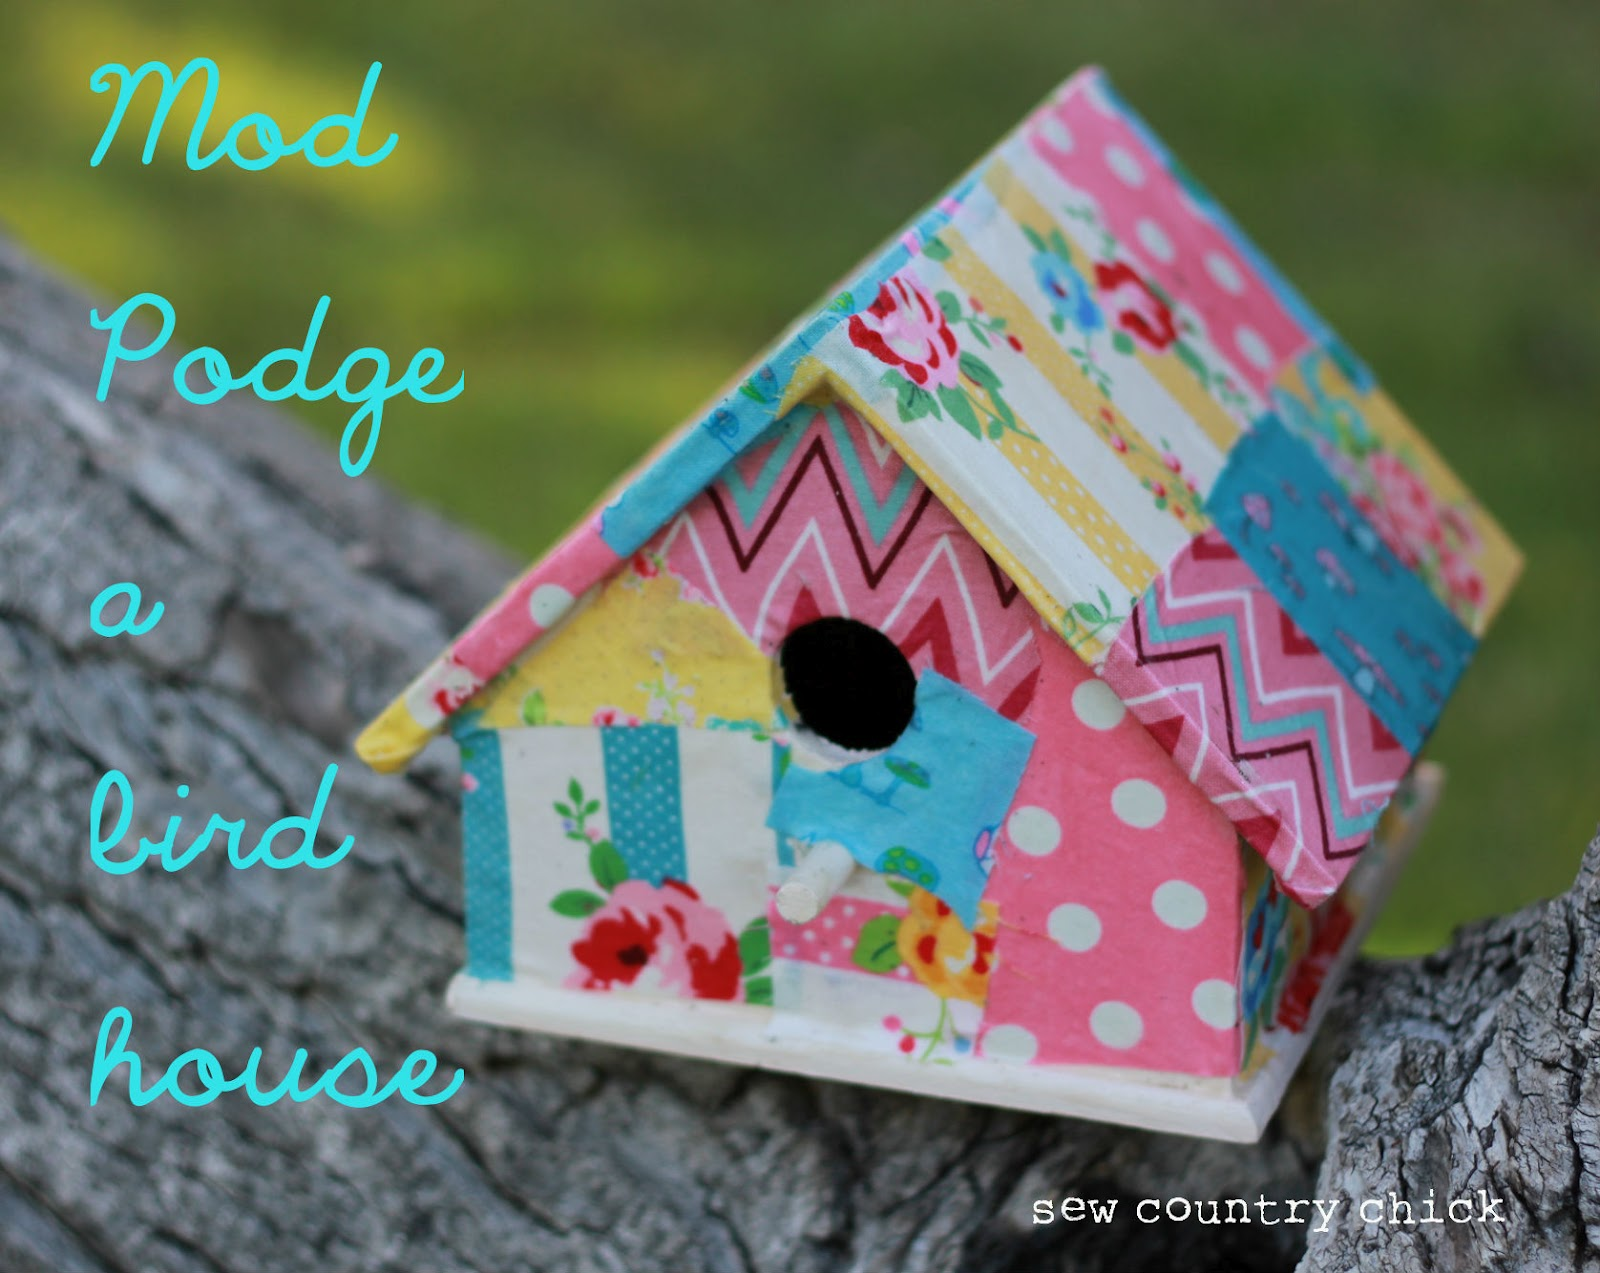 Mod podge a birdhouse spring crafts with kids for Birdhouse project